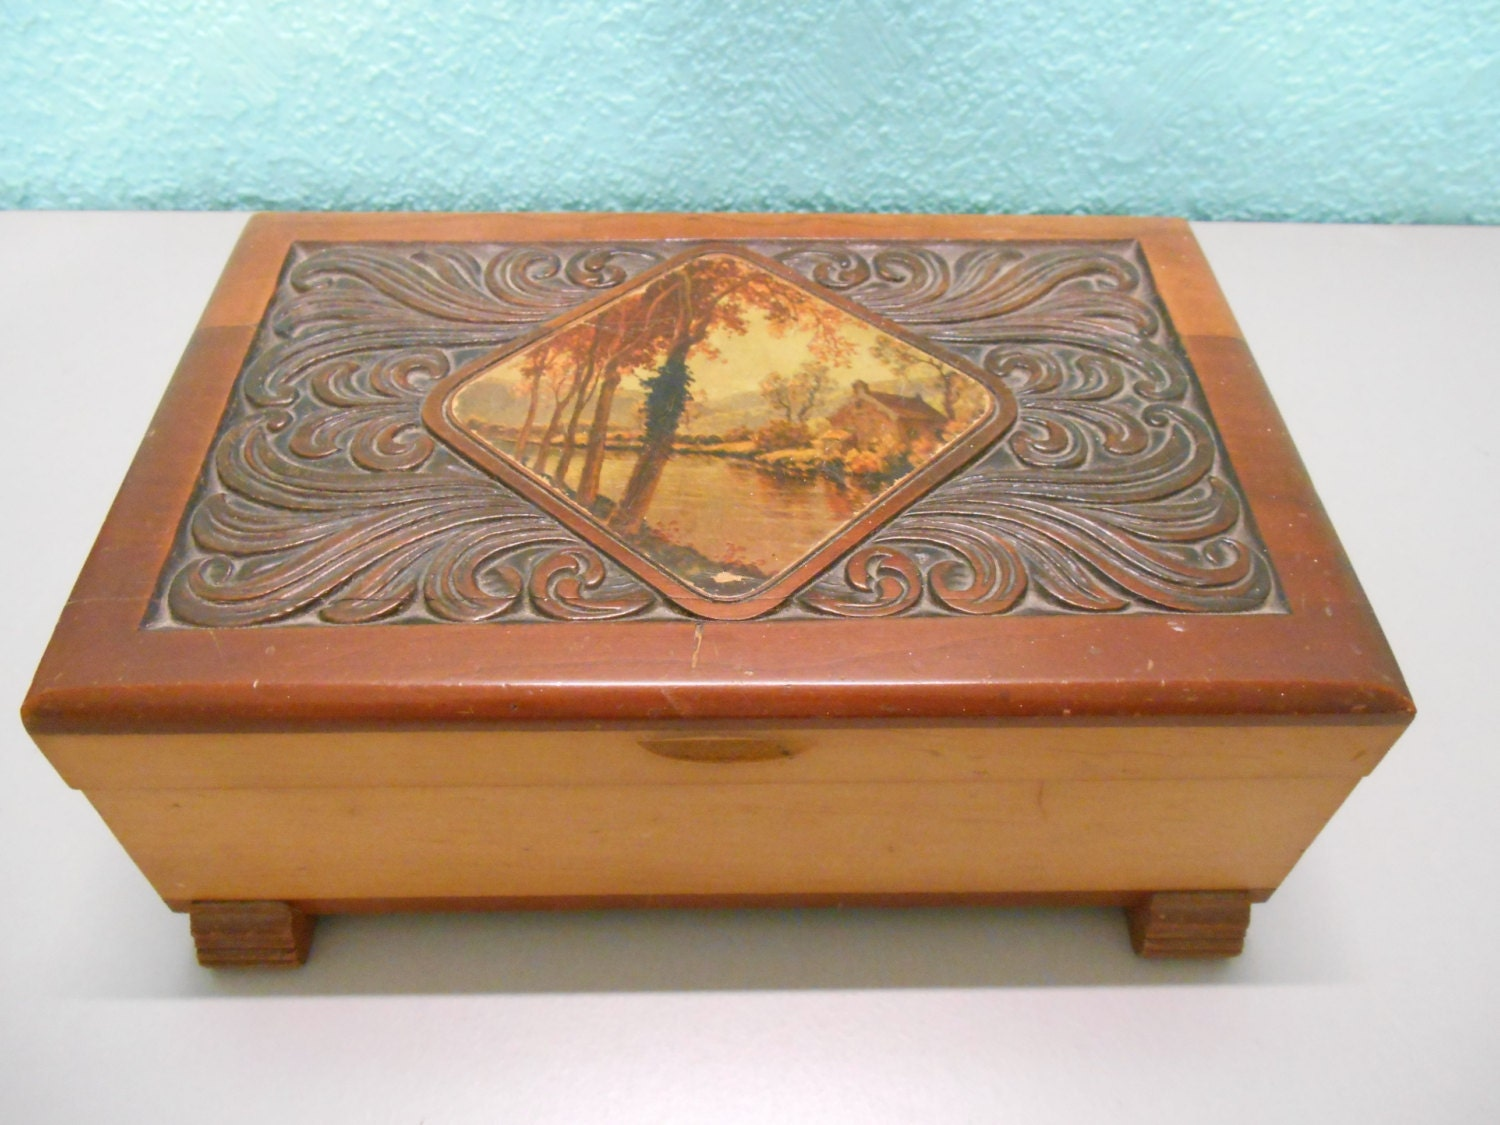 Decorative Box Lid : Large wooden box with carved lid decorative autum